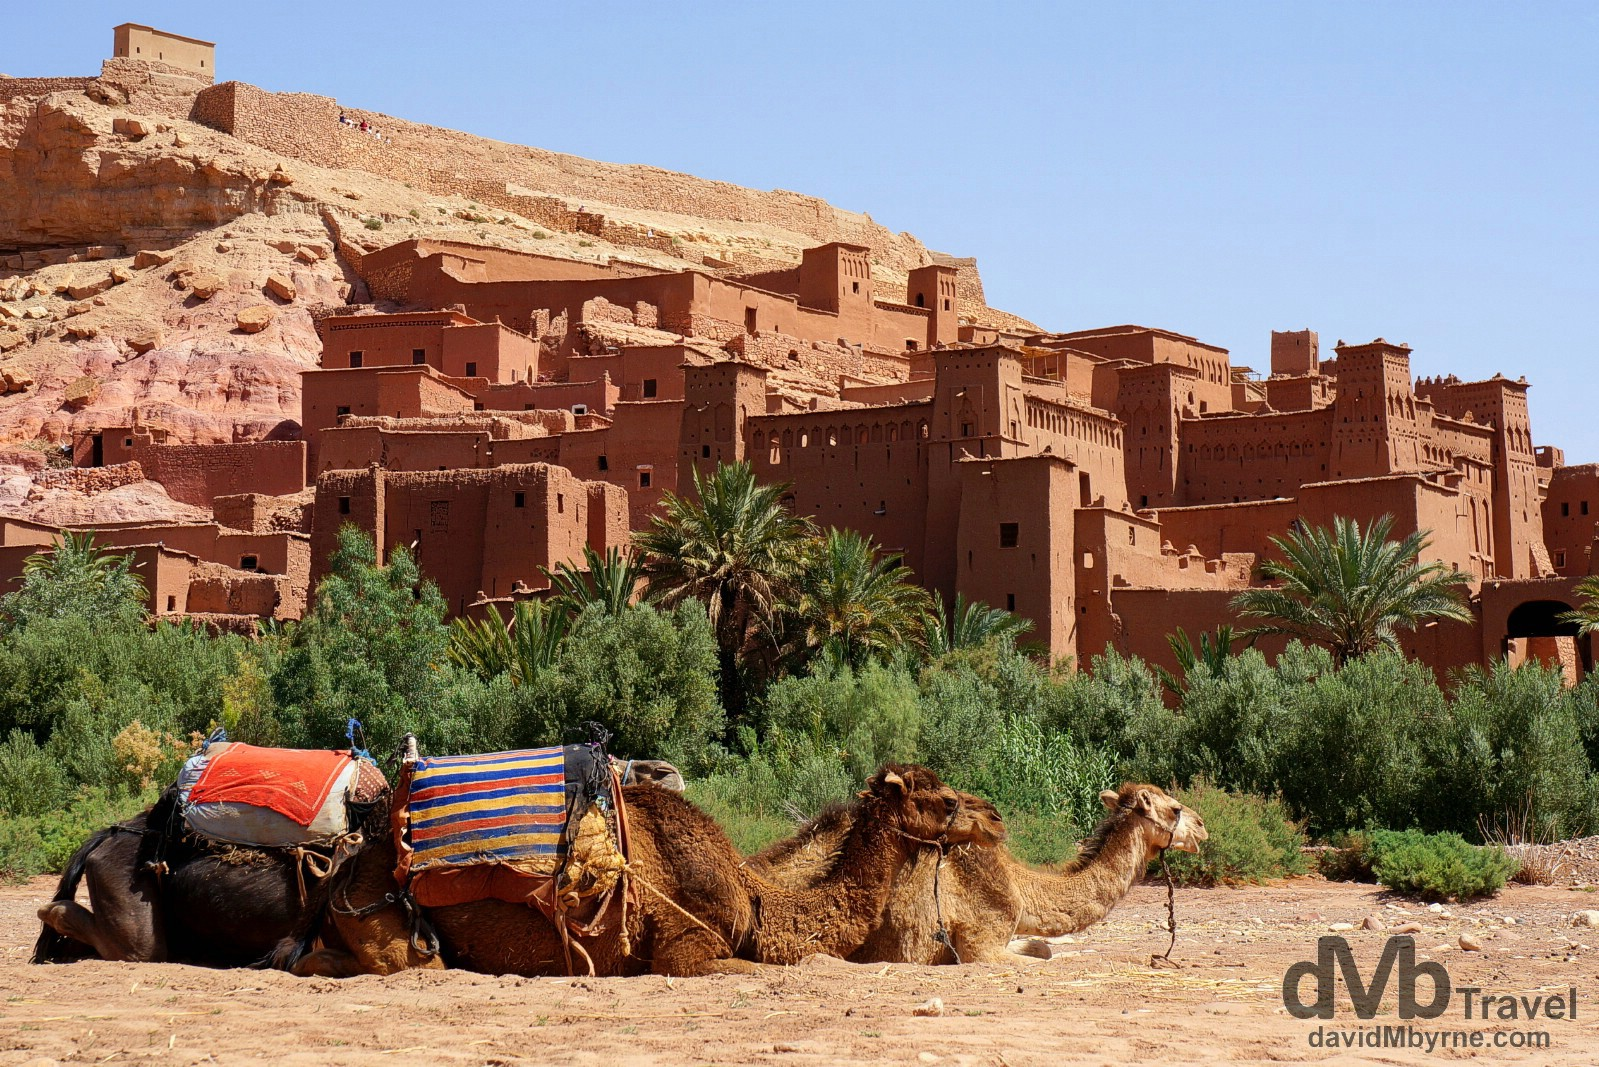 Camels resting in the Parched Oued Ounila riverbed fronting the UNESCO-listed Ait Benhaddou in southern Morocco. May 14th, 2014.